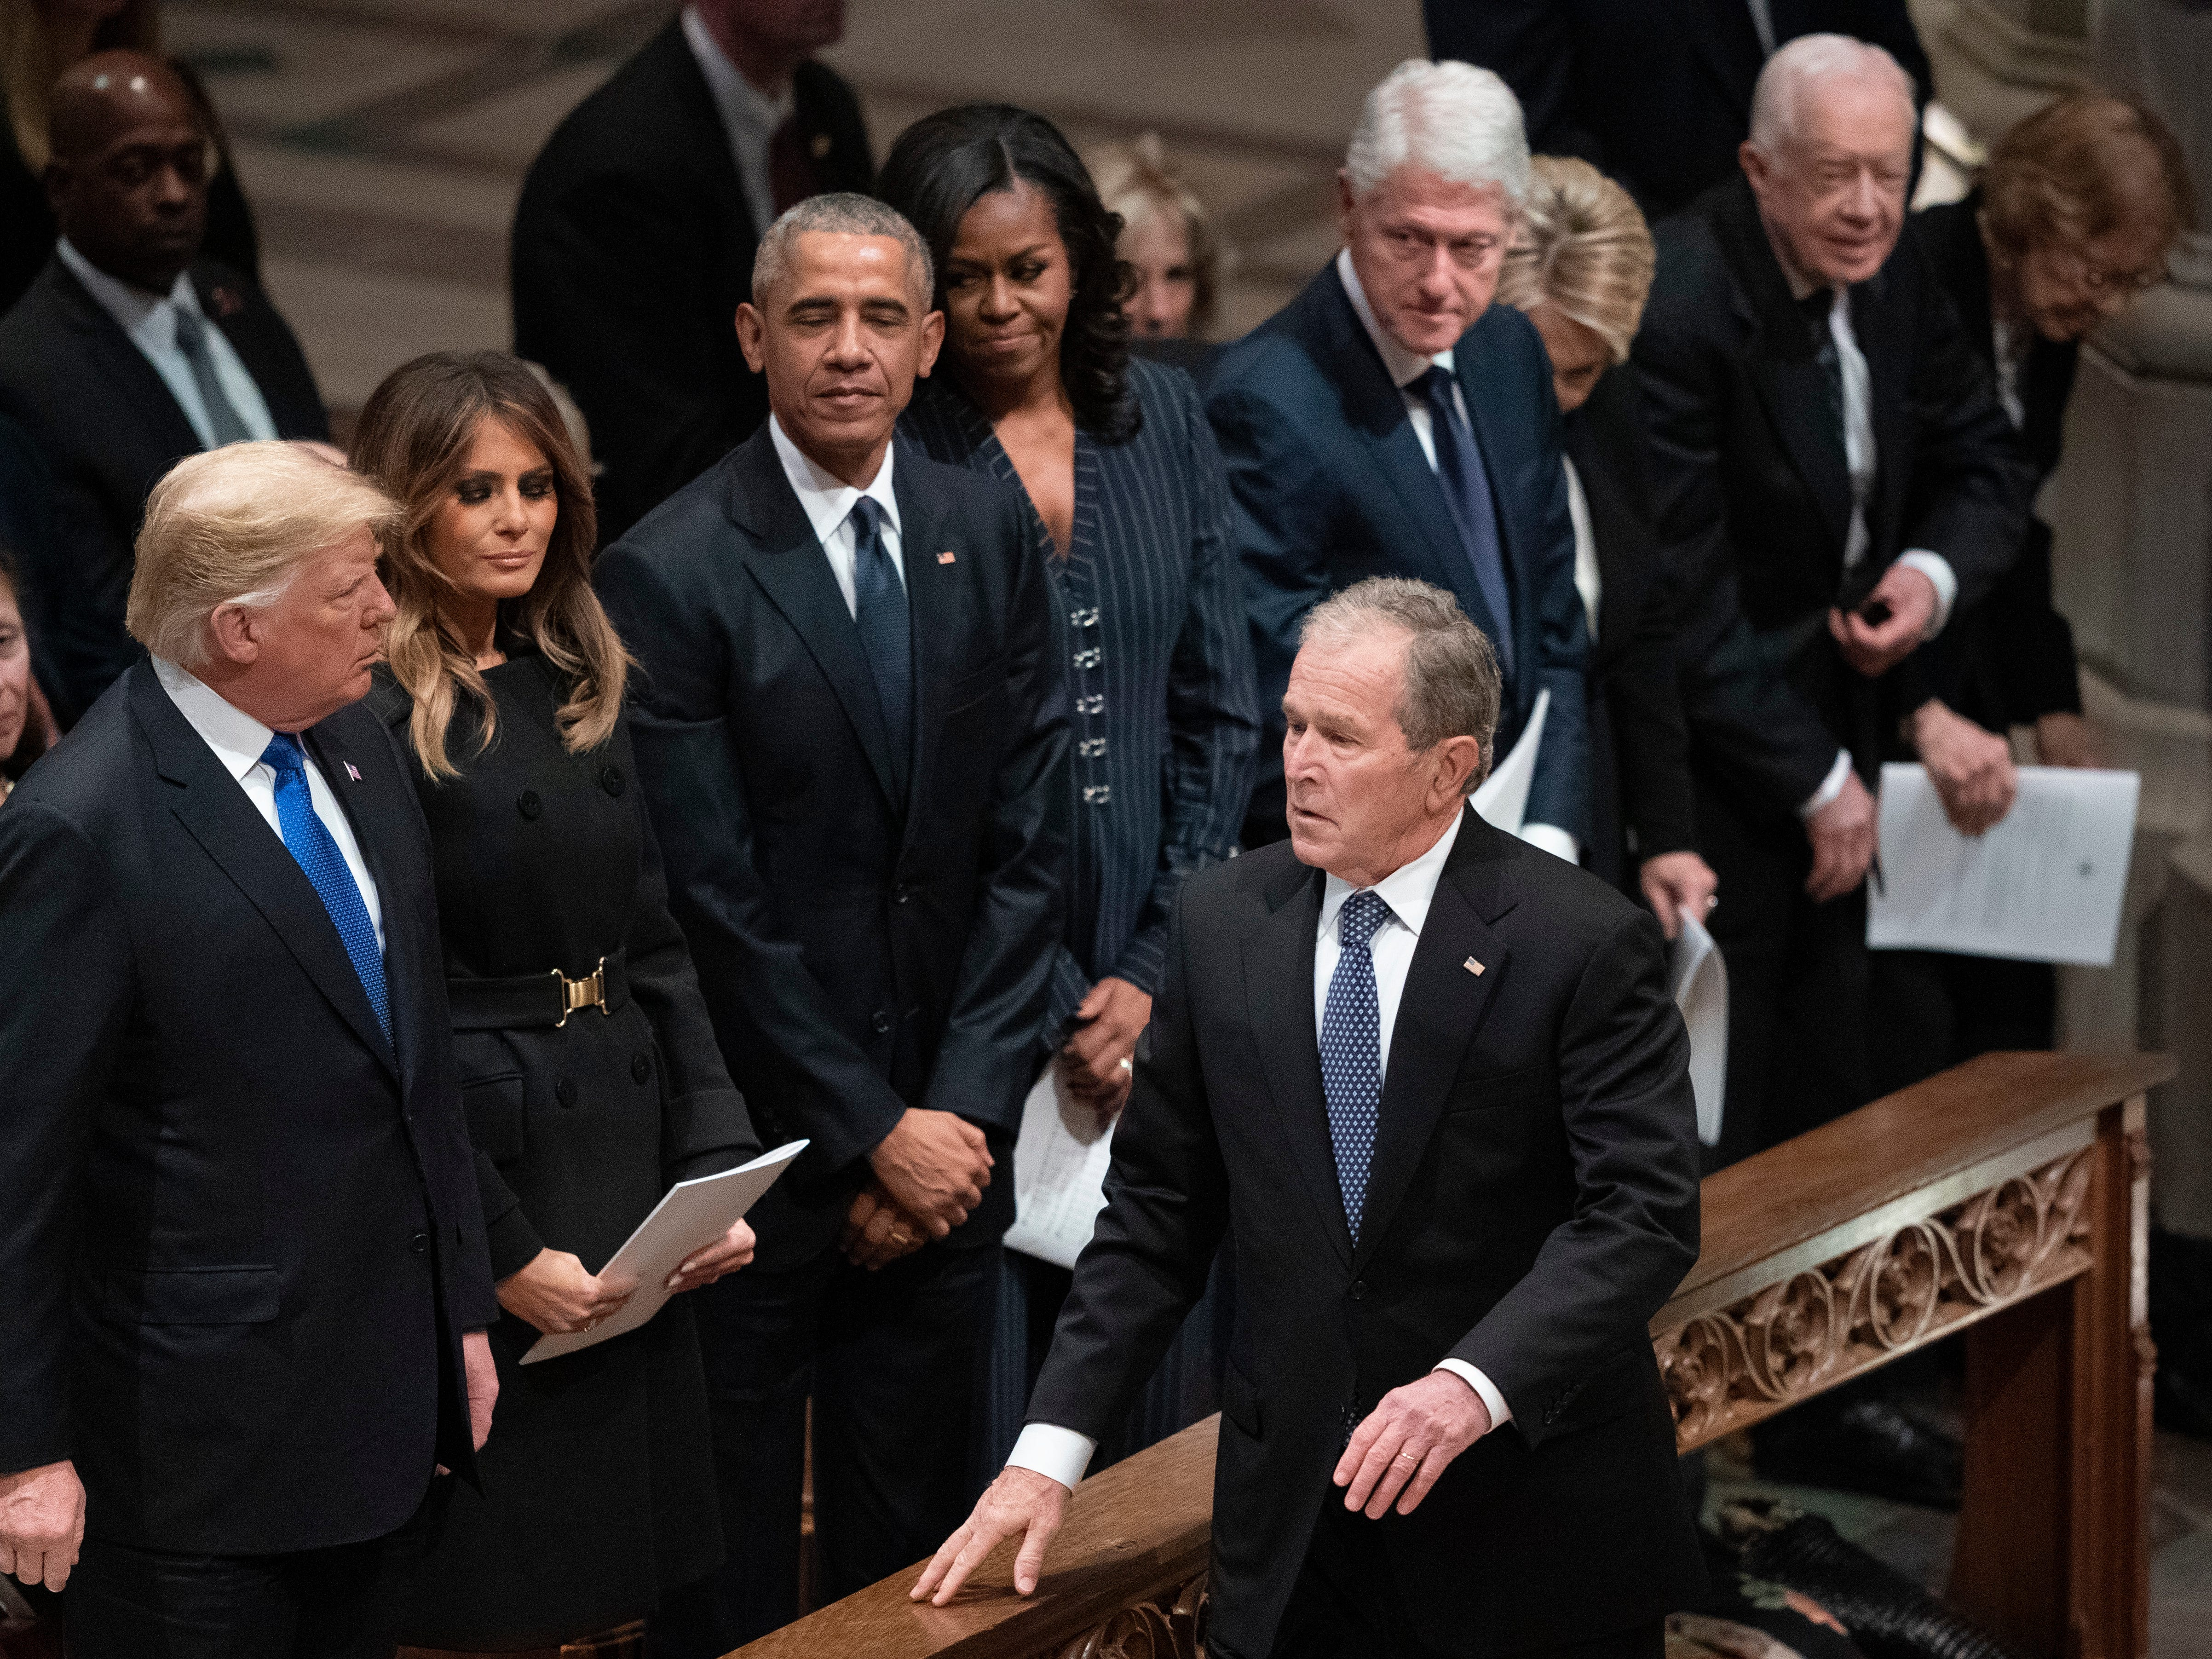 President George W. Bush walks to his seat after greeting President Donald Trump, first lady Melania Trump, former President Barack Obama, Michelle Obama, former President Bill Clinton, former Secretary of State Hillary Clinton, former President Jimmy Carter and Rosalynn Carter.